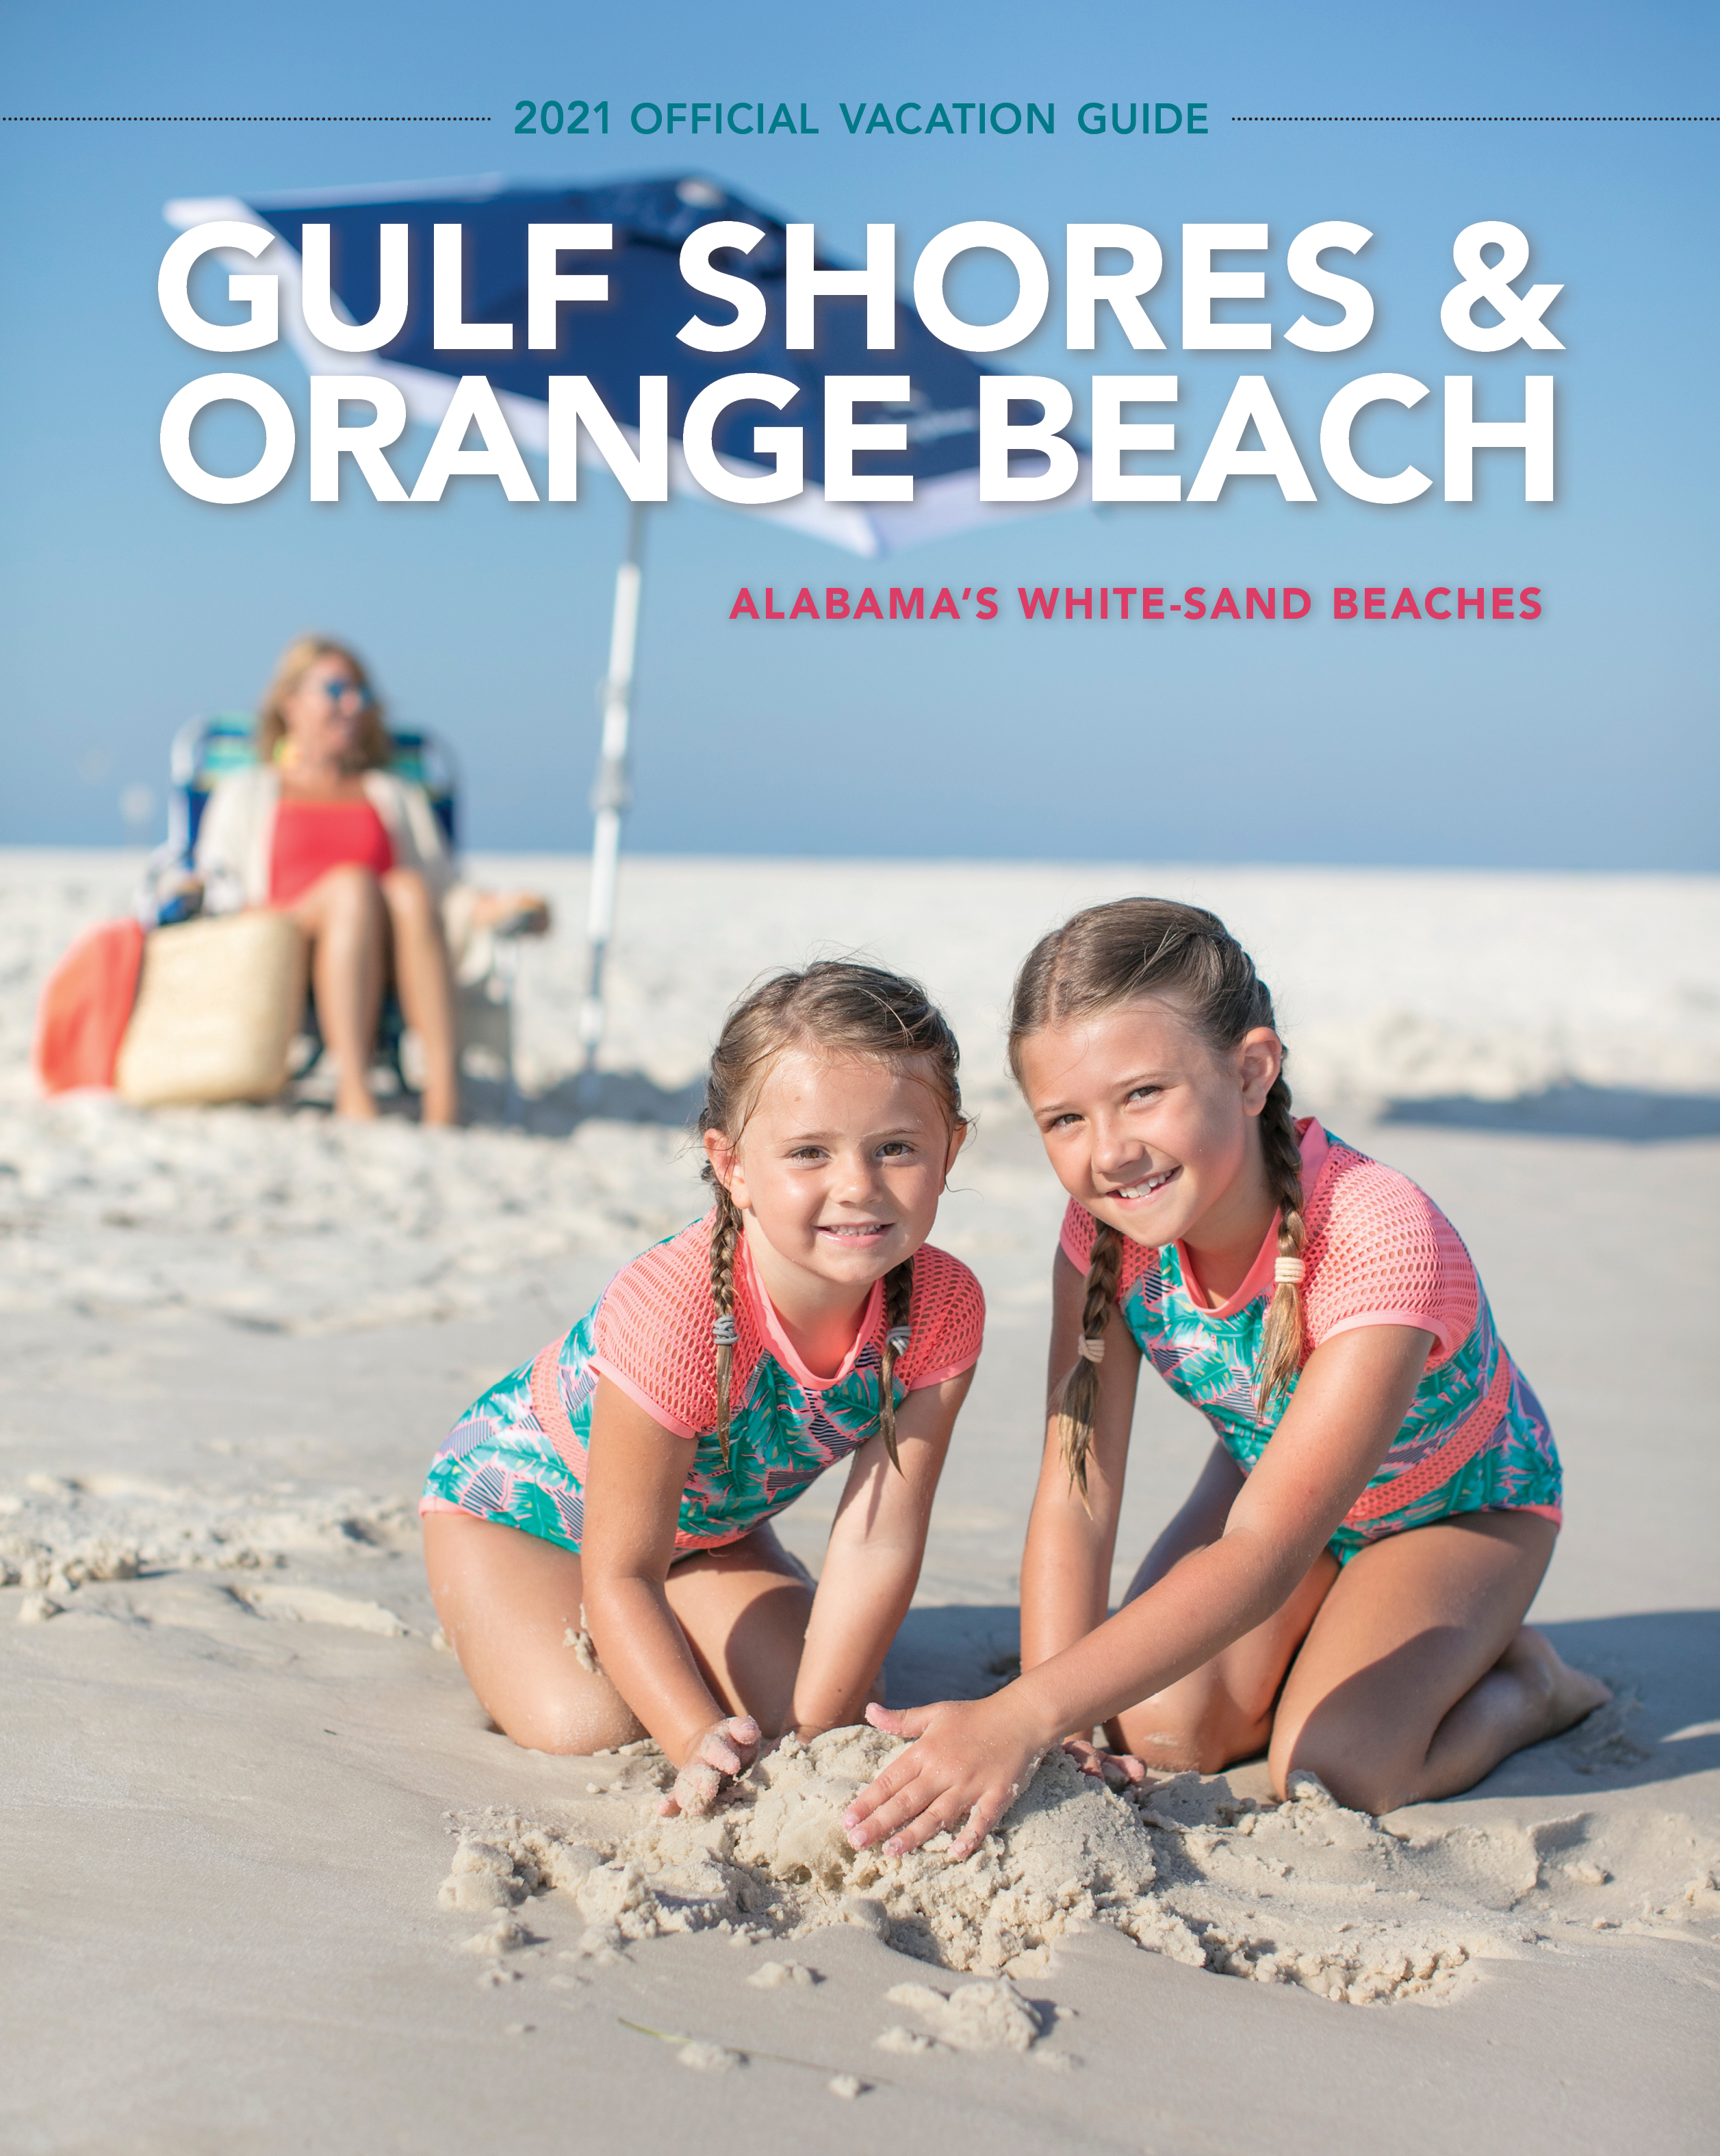 Gulf Shores & Orange Beach Vacation Guide, AL 2021